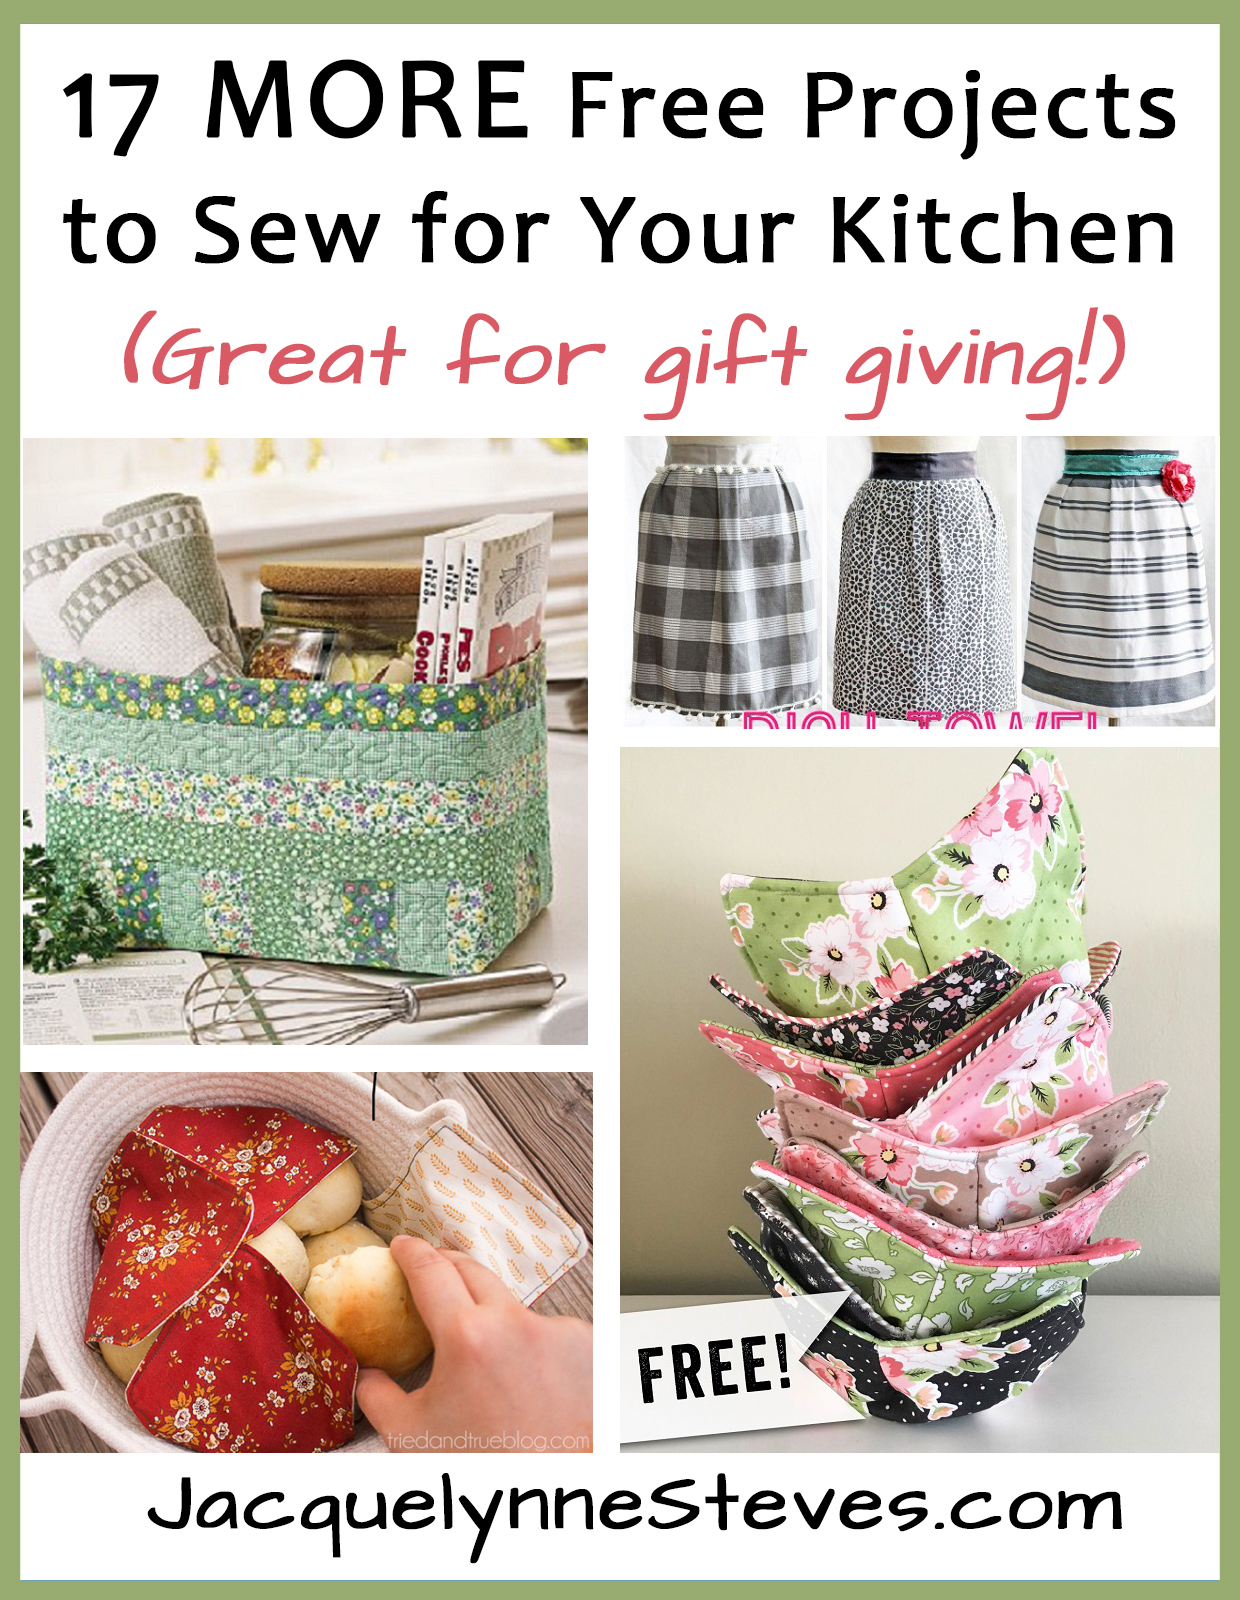 17 More Projects to Sew for Your Kitchen